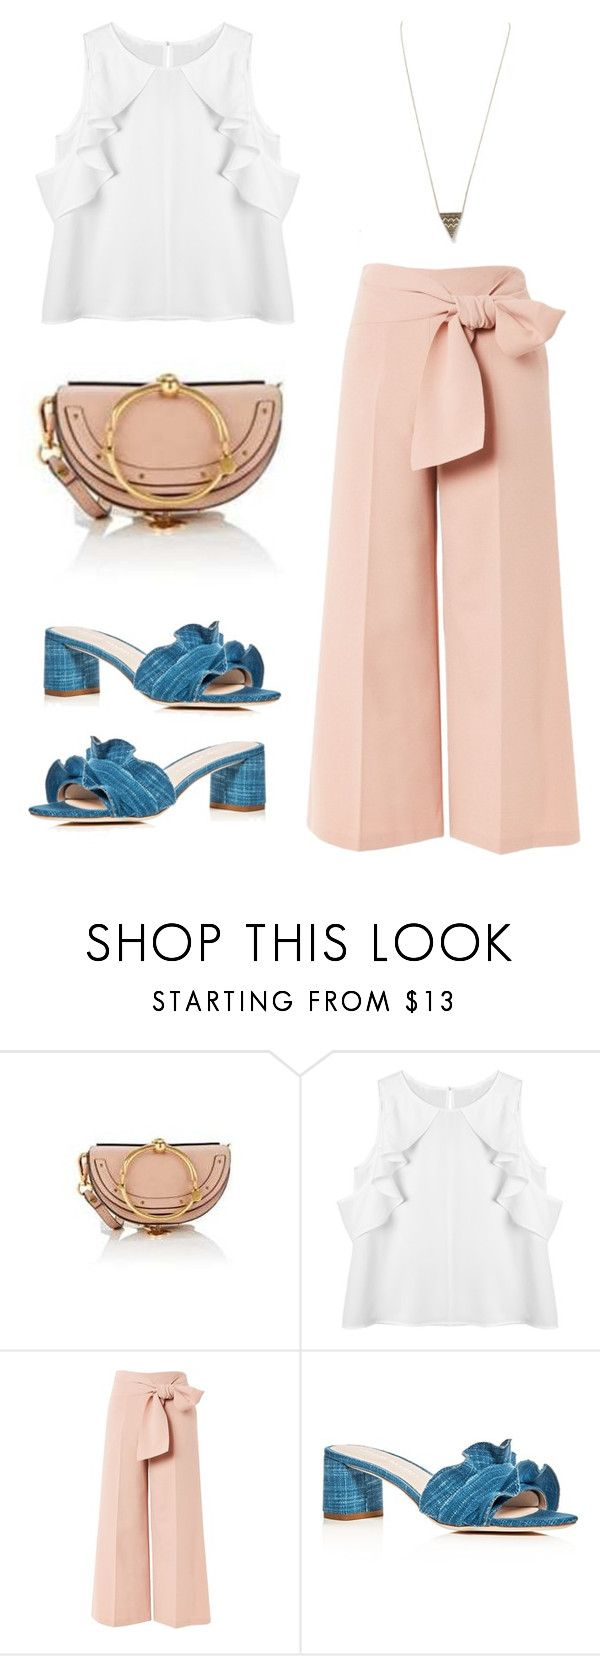 August Your Bijoux Box - House of Harlow by yourbijouxbox on Polyvore featuring Topshop, Loeffler Randall, Barneys New York and House of Harlow 1960